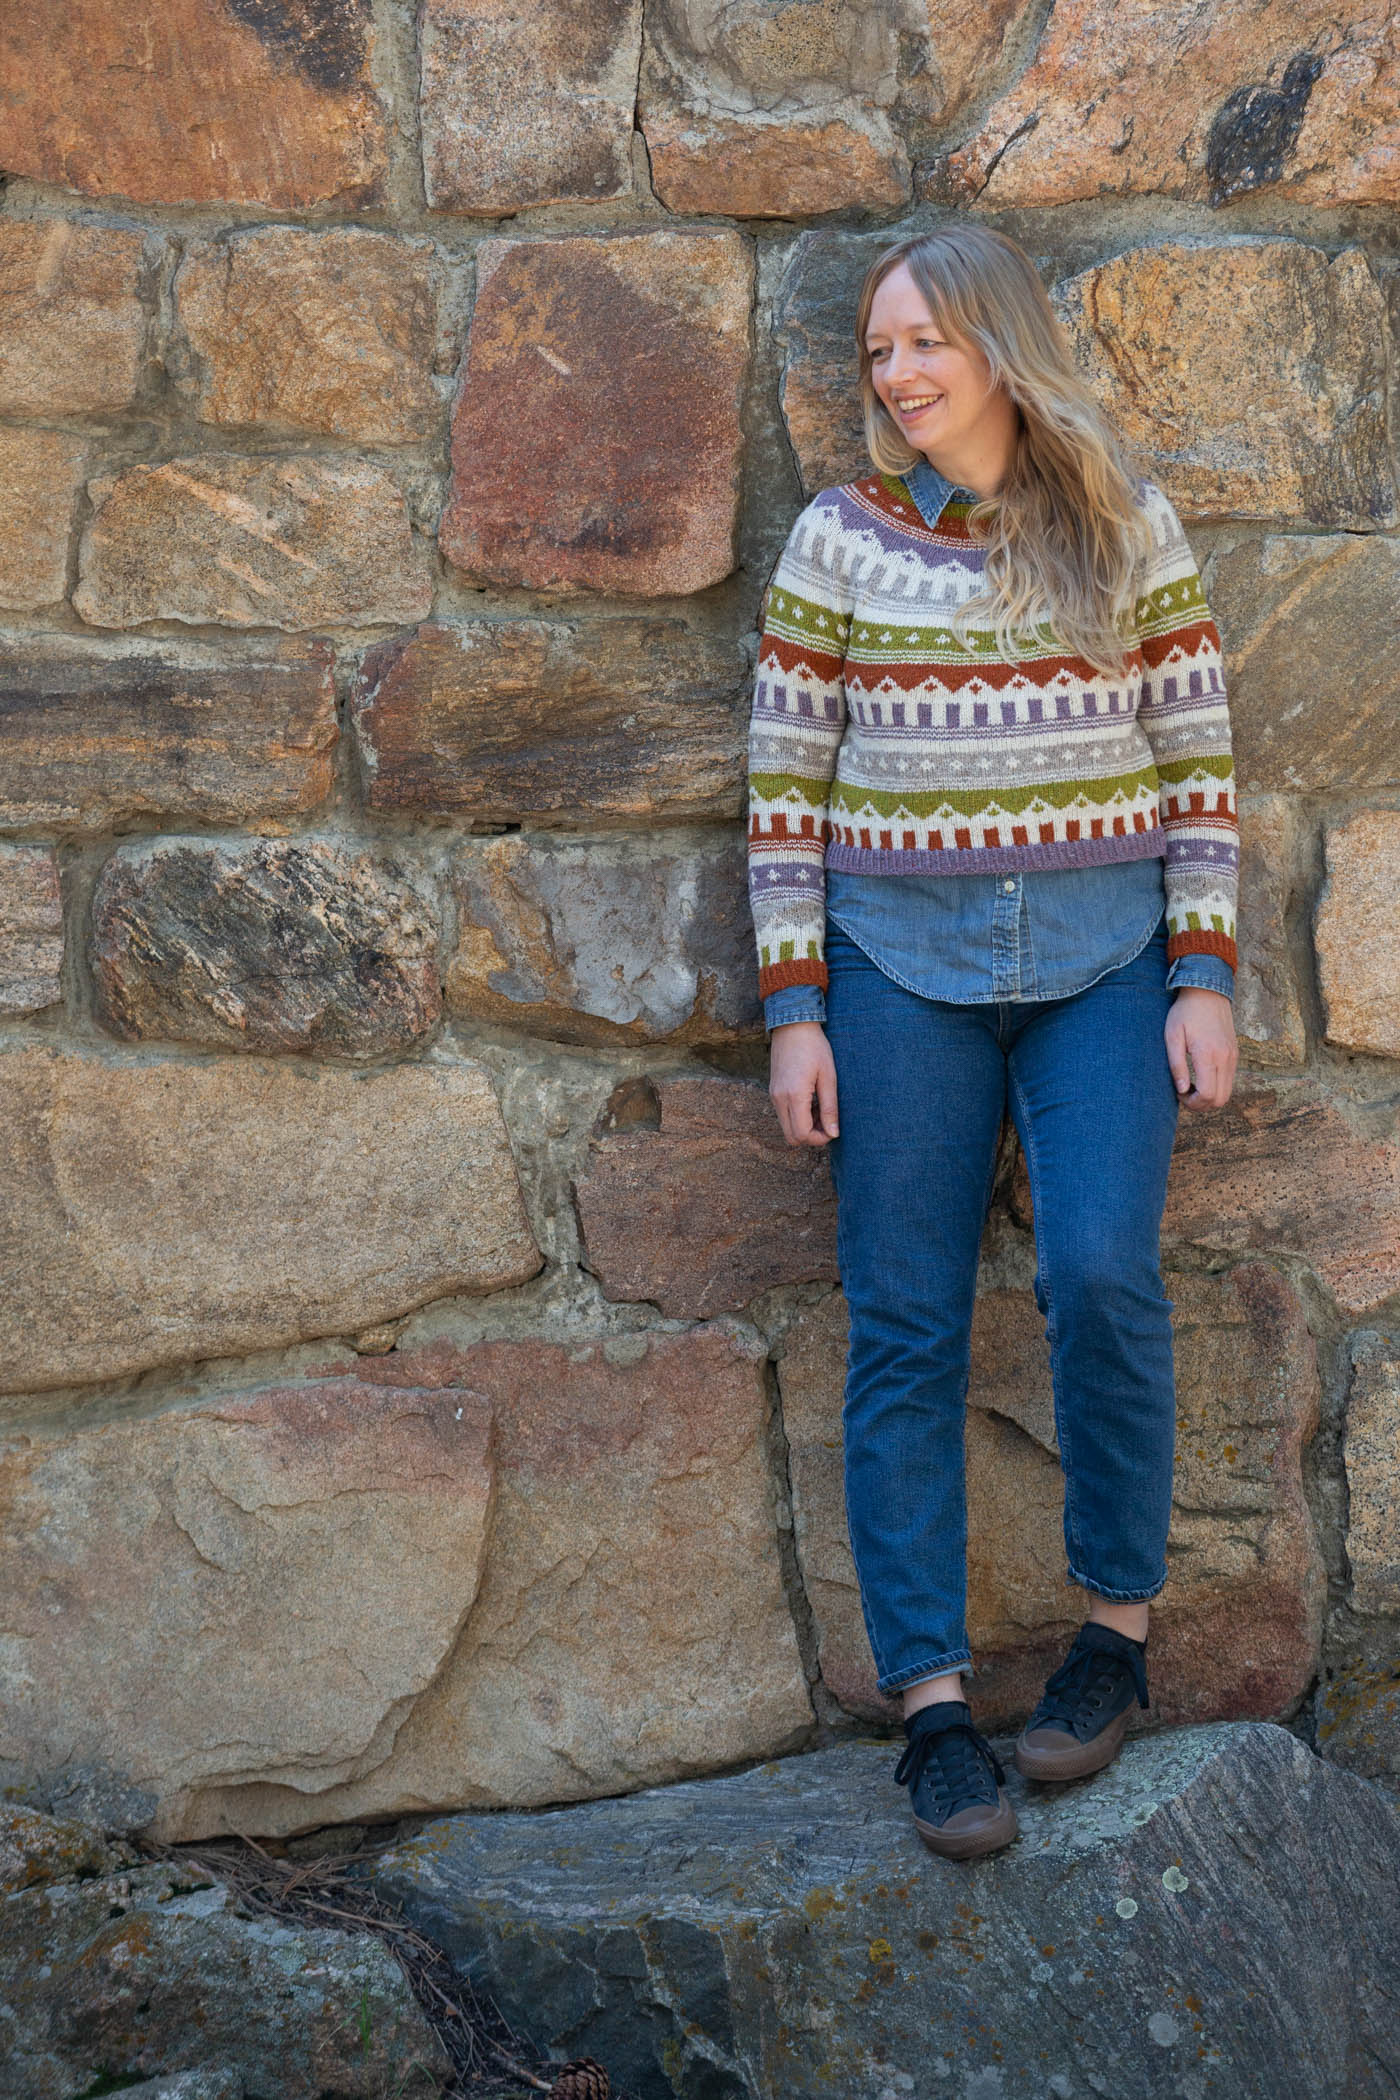 Women standing against a stone wall looking over her right shoulder smiling. Women is wearing a multi colored knitted sweater and jeans.